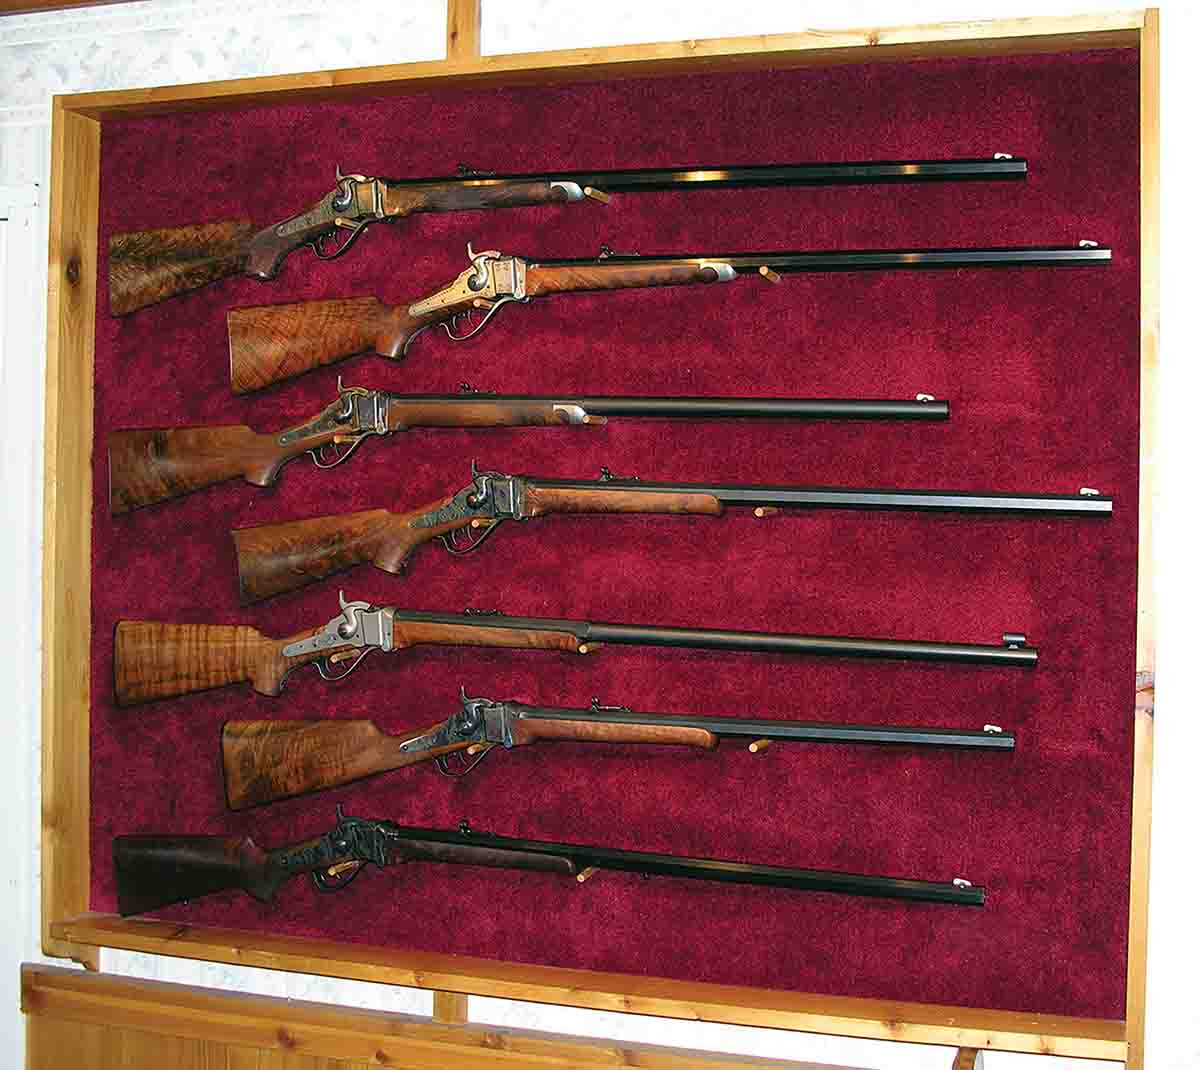 This is just one display of many at the Shiloh Rifle Manufacturing Company showroom in Big Timber, Montana.